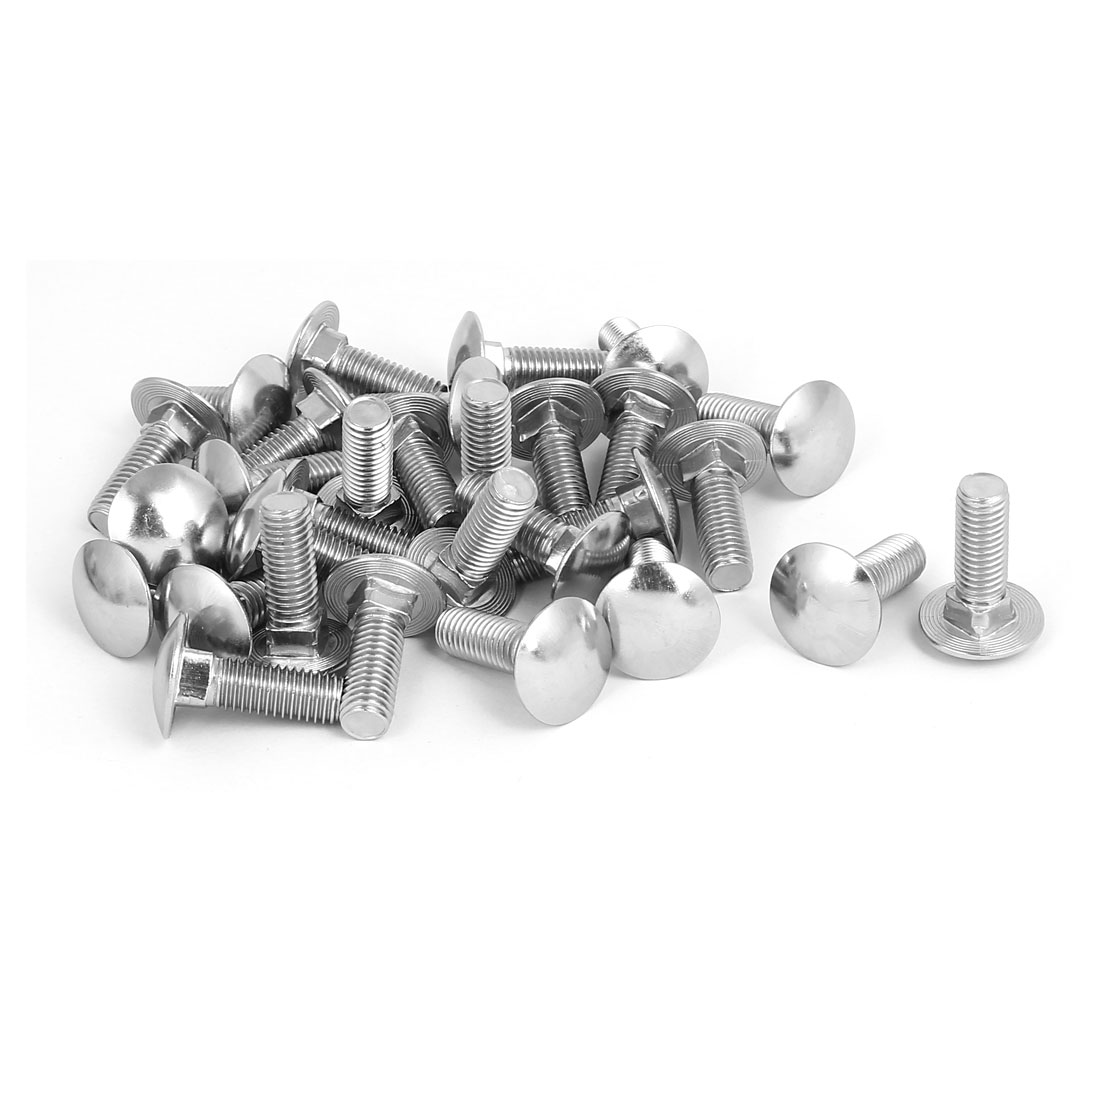 M10 x 30mm 304 Stainless Steel Round Cap Square Neck Carriage Bolts DIN603 30PCS